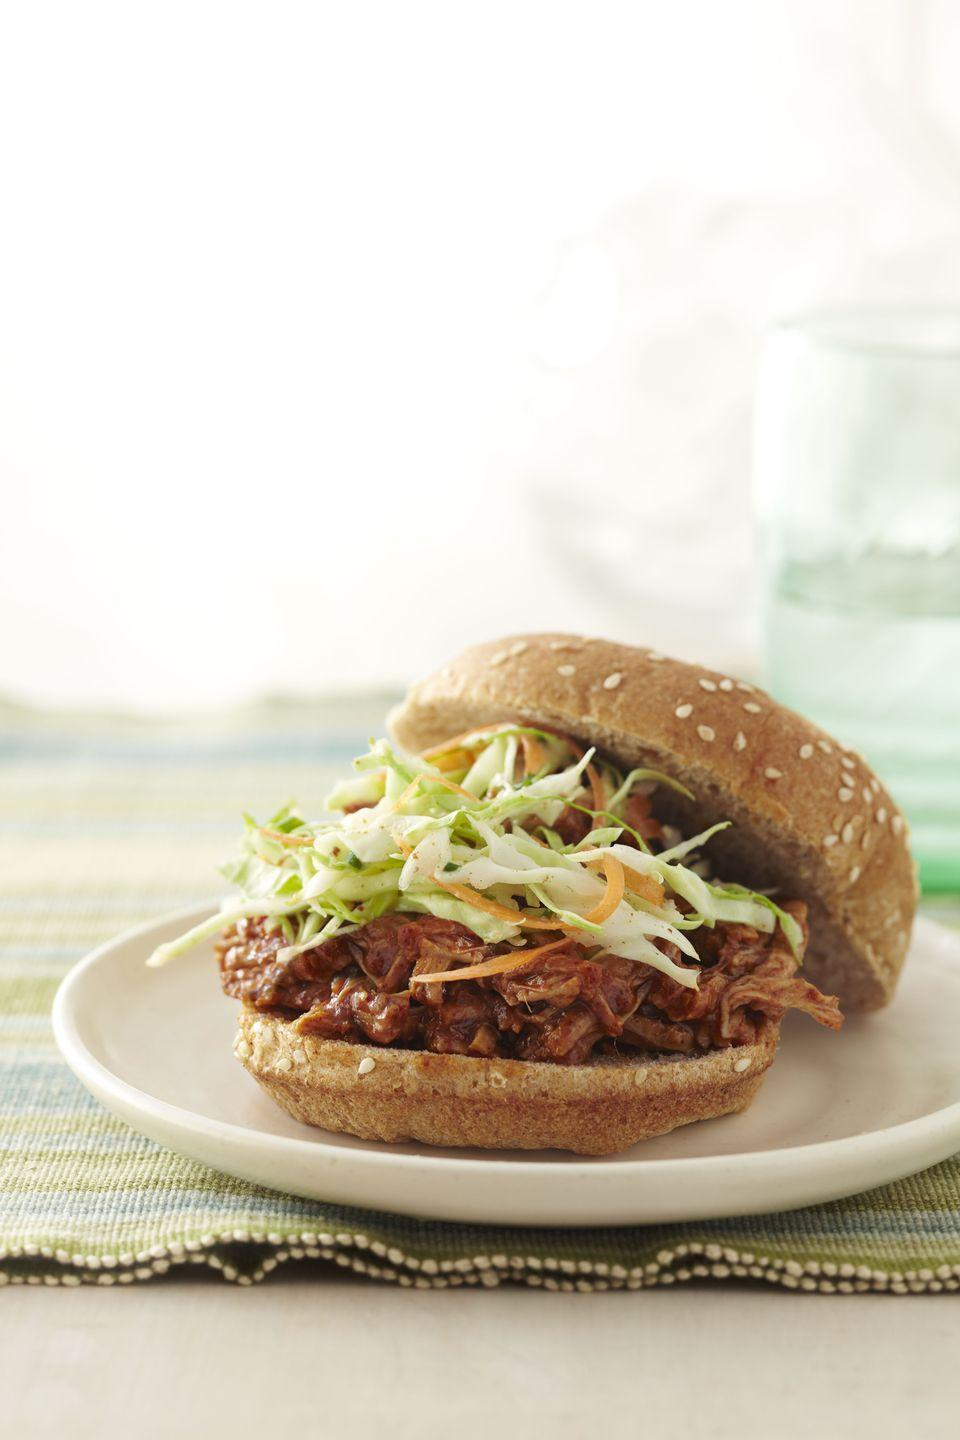 "<p>By swapping lean tenderloin for pork shoulder (and a few other ingredient substitutions), we cut the classic recipe's fat content by 88%. </p><p><a href=""https://www.goodhousekeeping.com/food-recipes/healthy/a14156/pulled-pork-sandwich-recipe-ghk0512/"" rel=""nofollow noopener"" target=""_blank"" data-ylk=""slk:Get the recipe for Healthy Makeover: Pulled Pork Sandwich »"" class=""link rapid-noclick-resp""><em>Get the recipe for Healthy Makeover: Pulled Pork Sandwich »</em></a></p>"